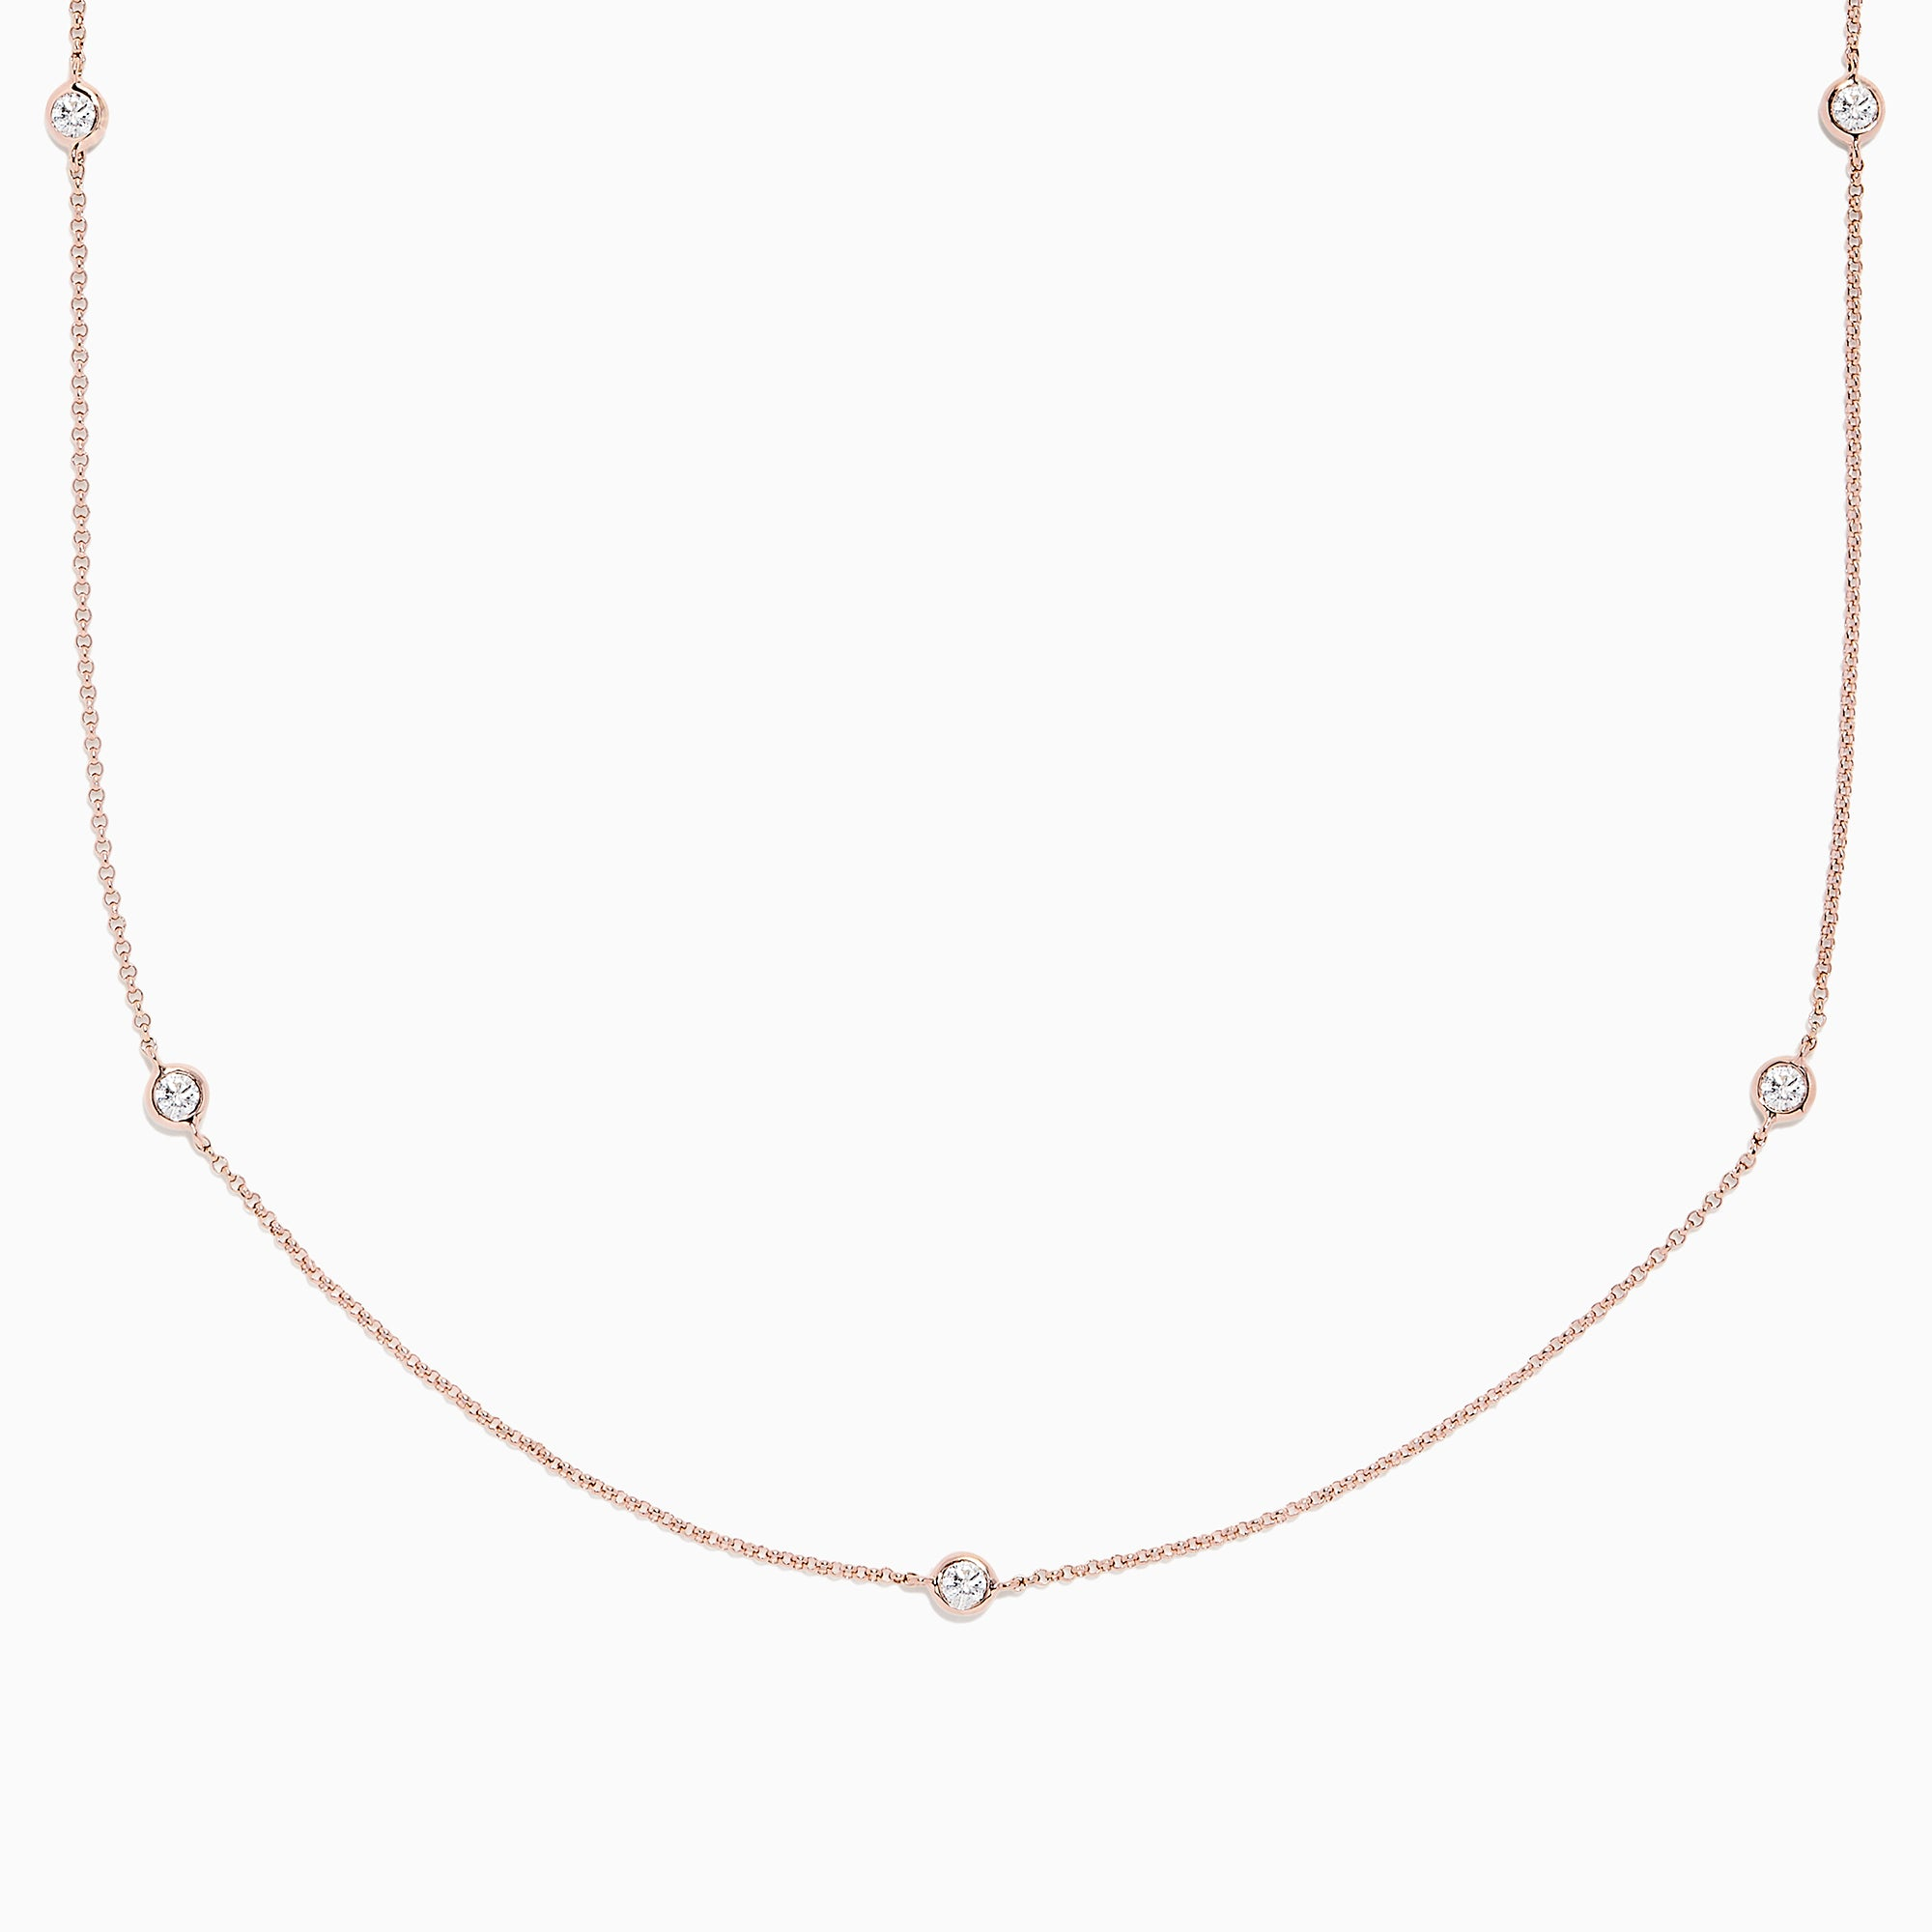 Effy Pave Rose 14K Rose Gold Diamond Station Necklace, 0.62 TCW